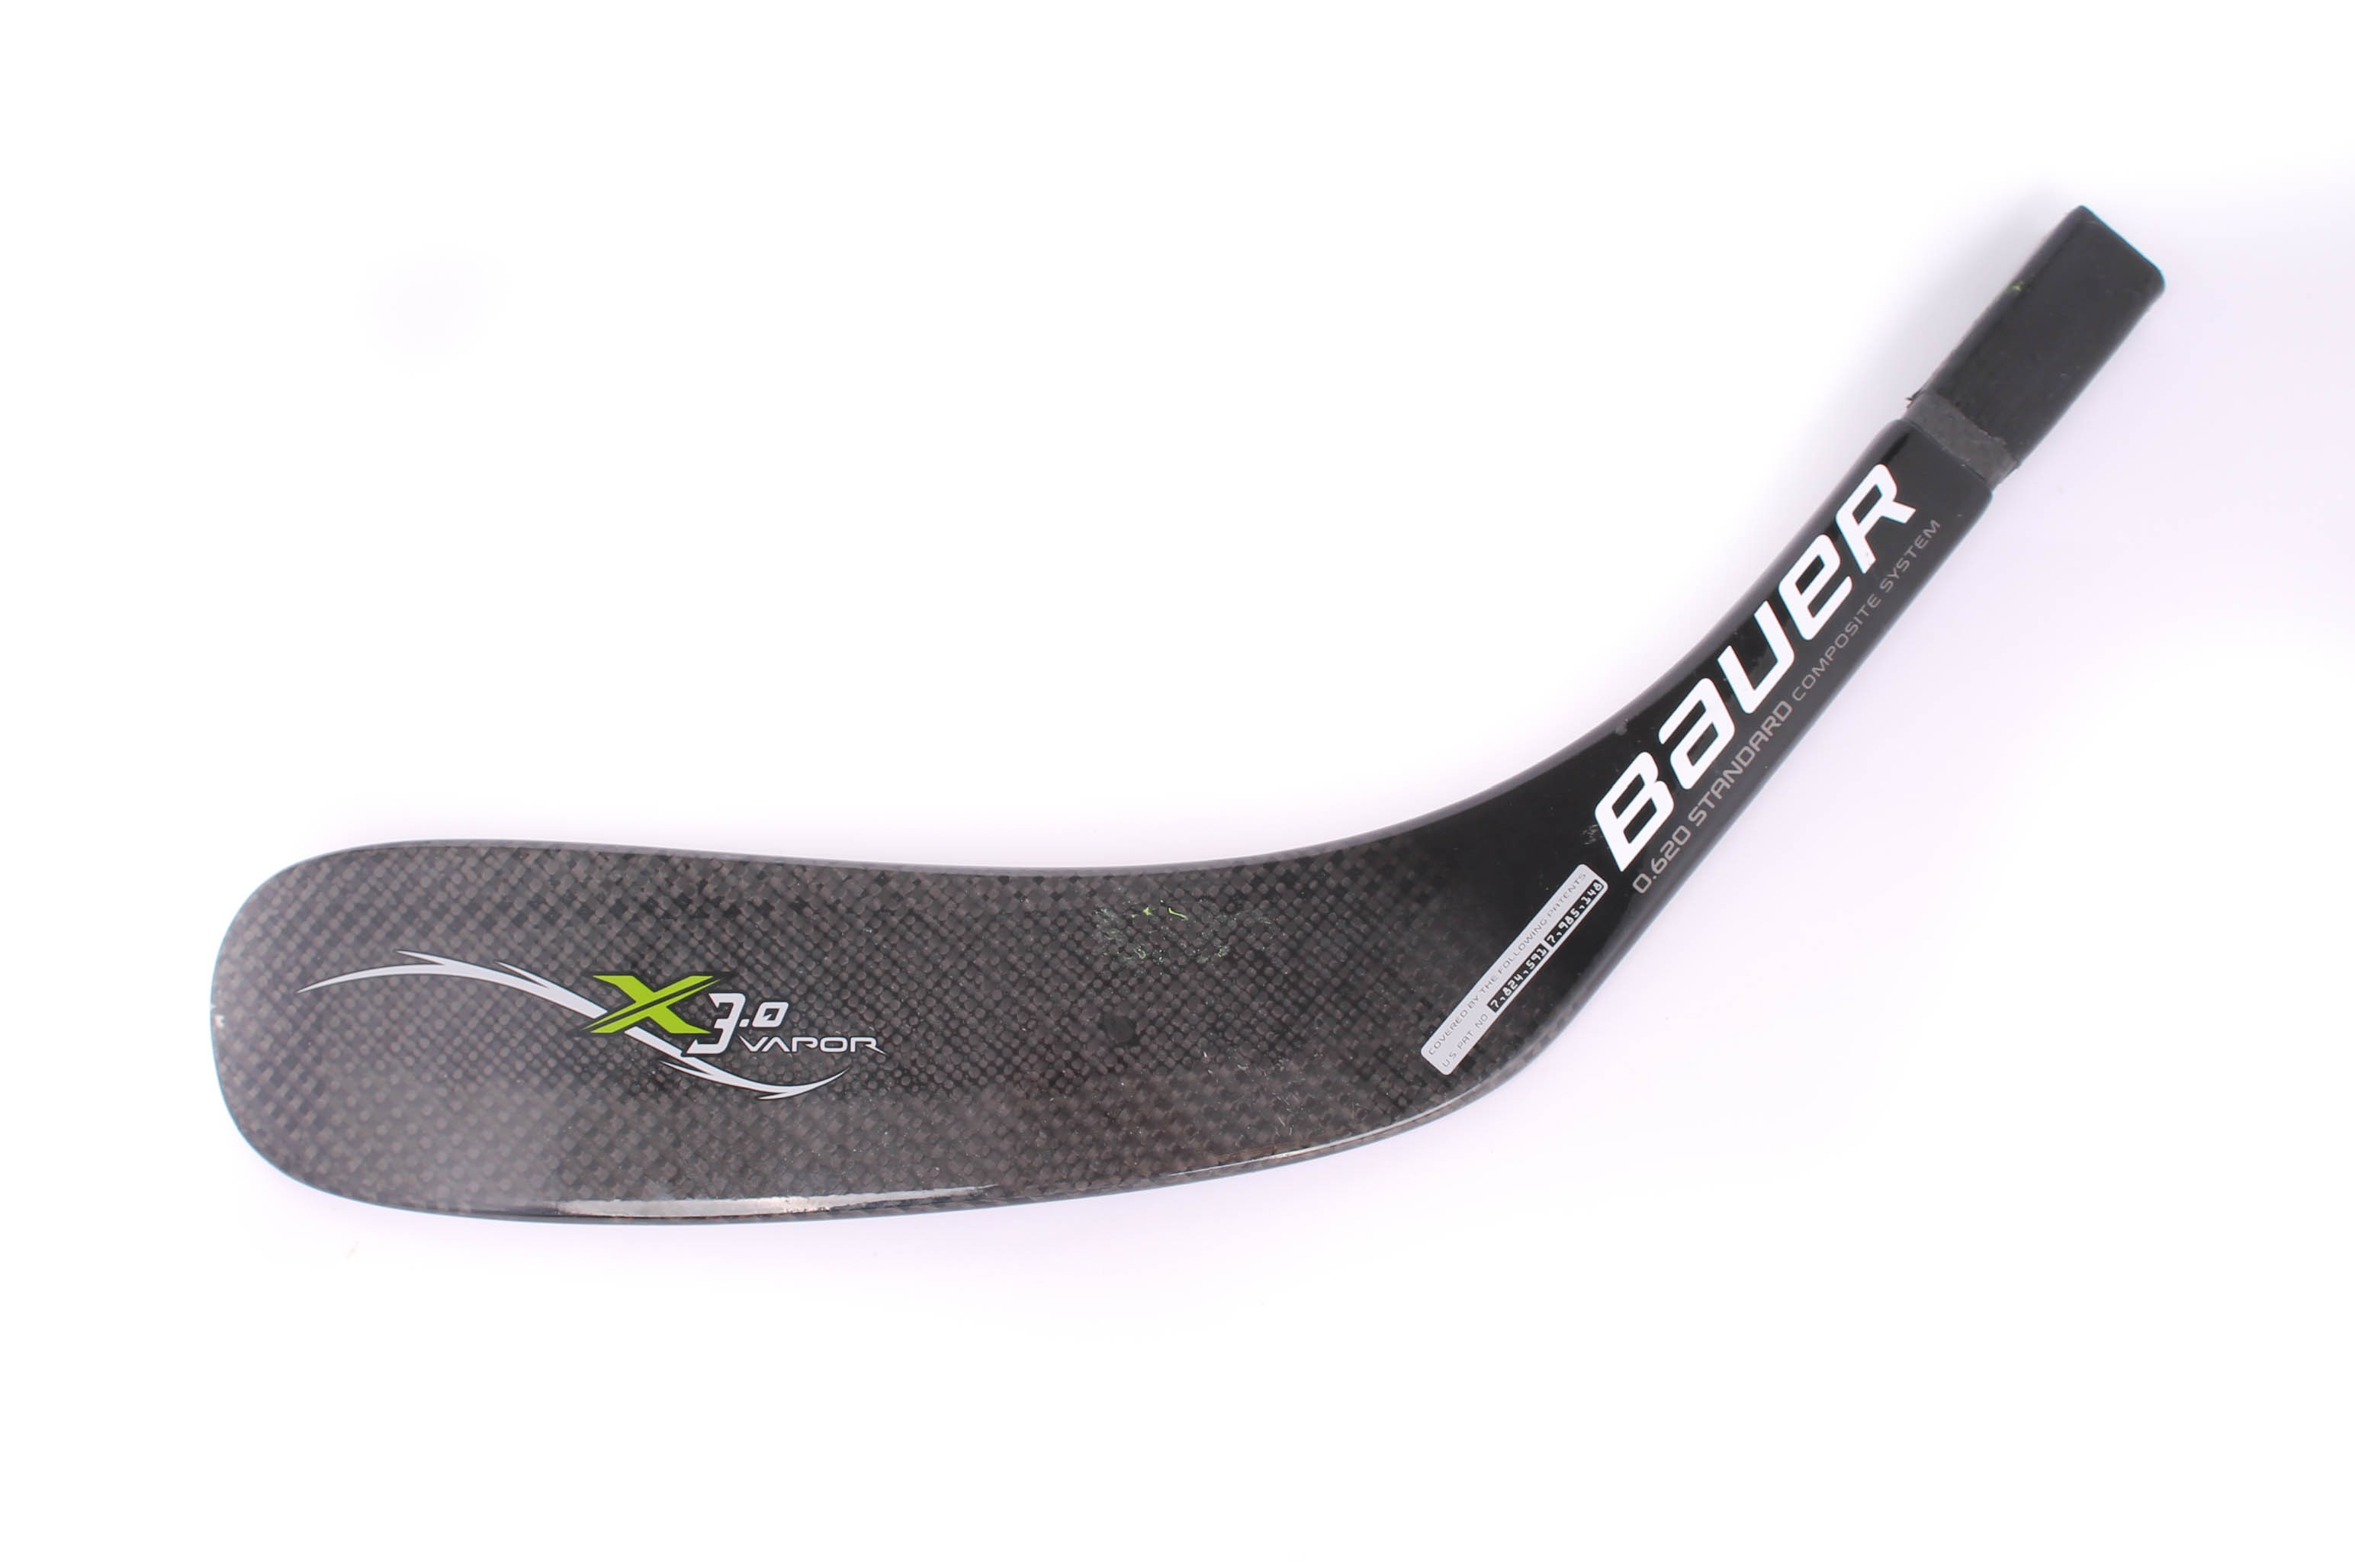 Bauer Vapor X3.0 Junior Composite Replacement Blade